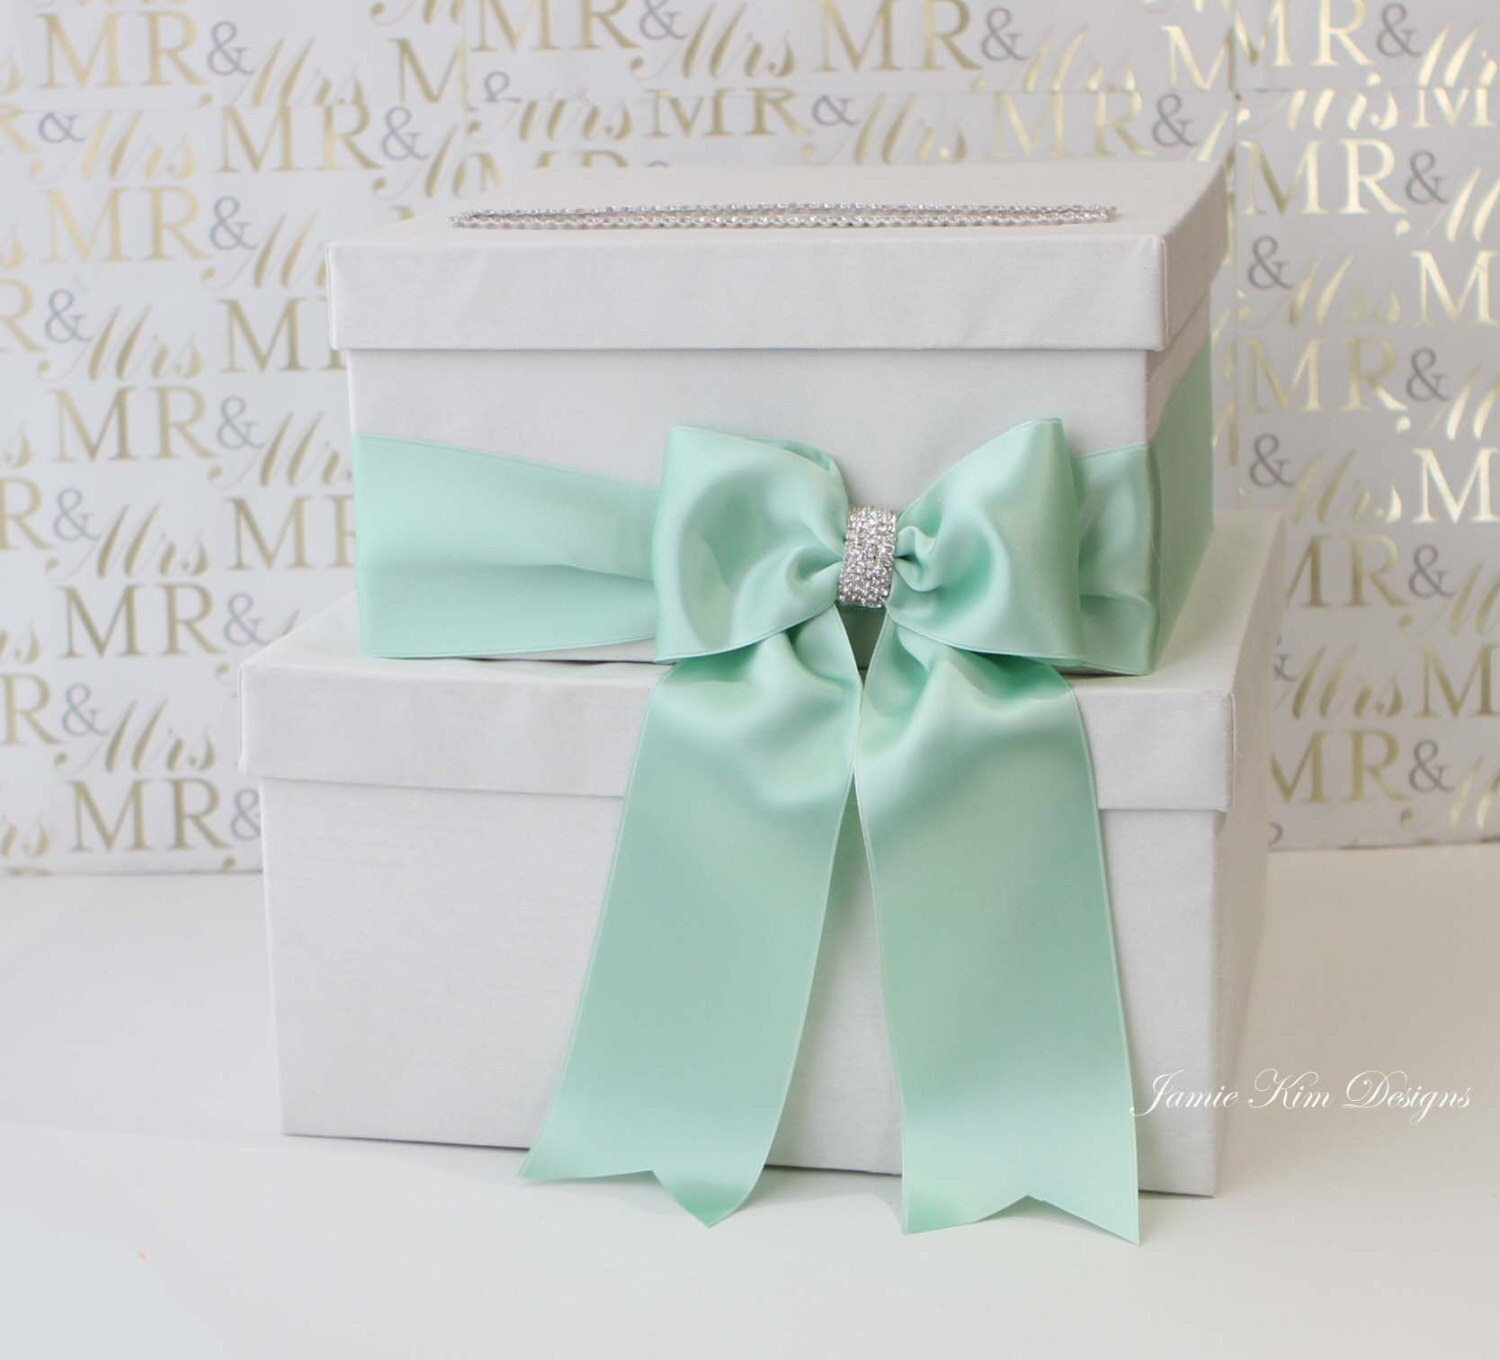 Wedding Gift Boxes For Cards : Wedding Card Box Money Box Wedding Gift Card Money Box